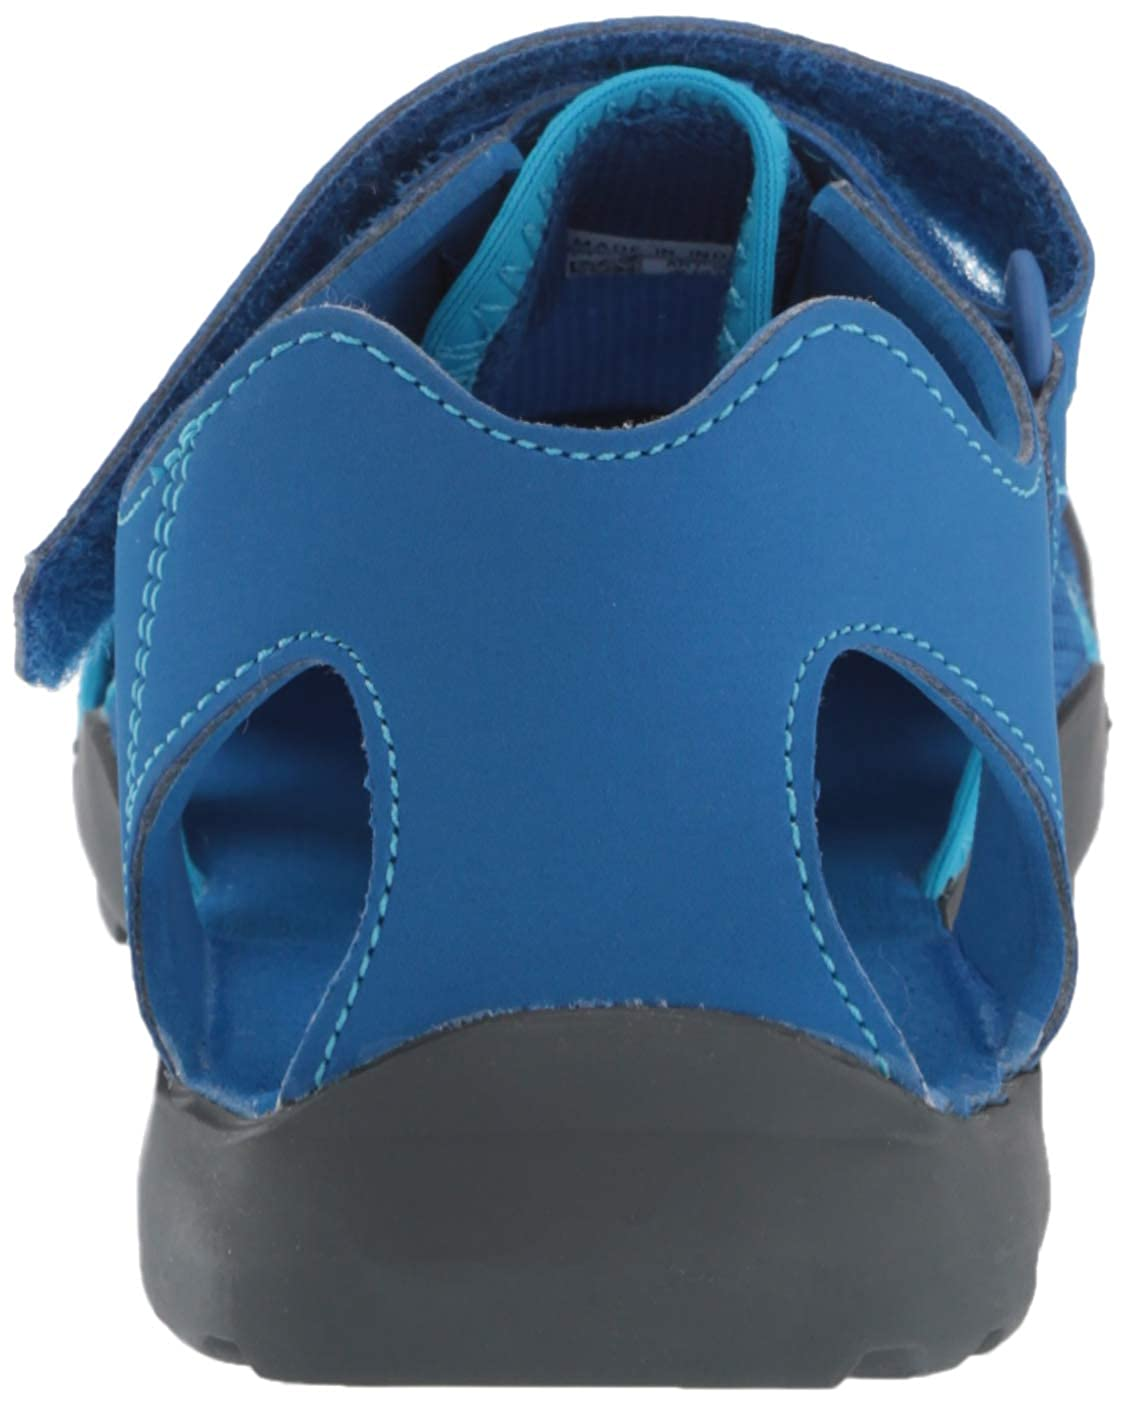 Sport Sandals Clothing, Shoes & Jewelry adidas outdoor Captain Toey Kids  Water Sports Shoe Sandal